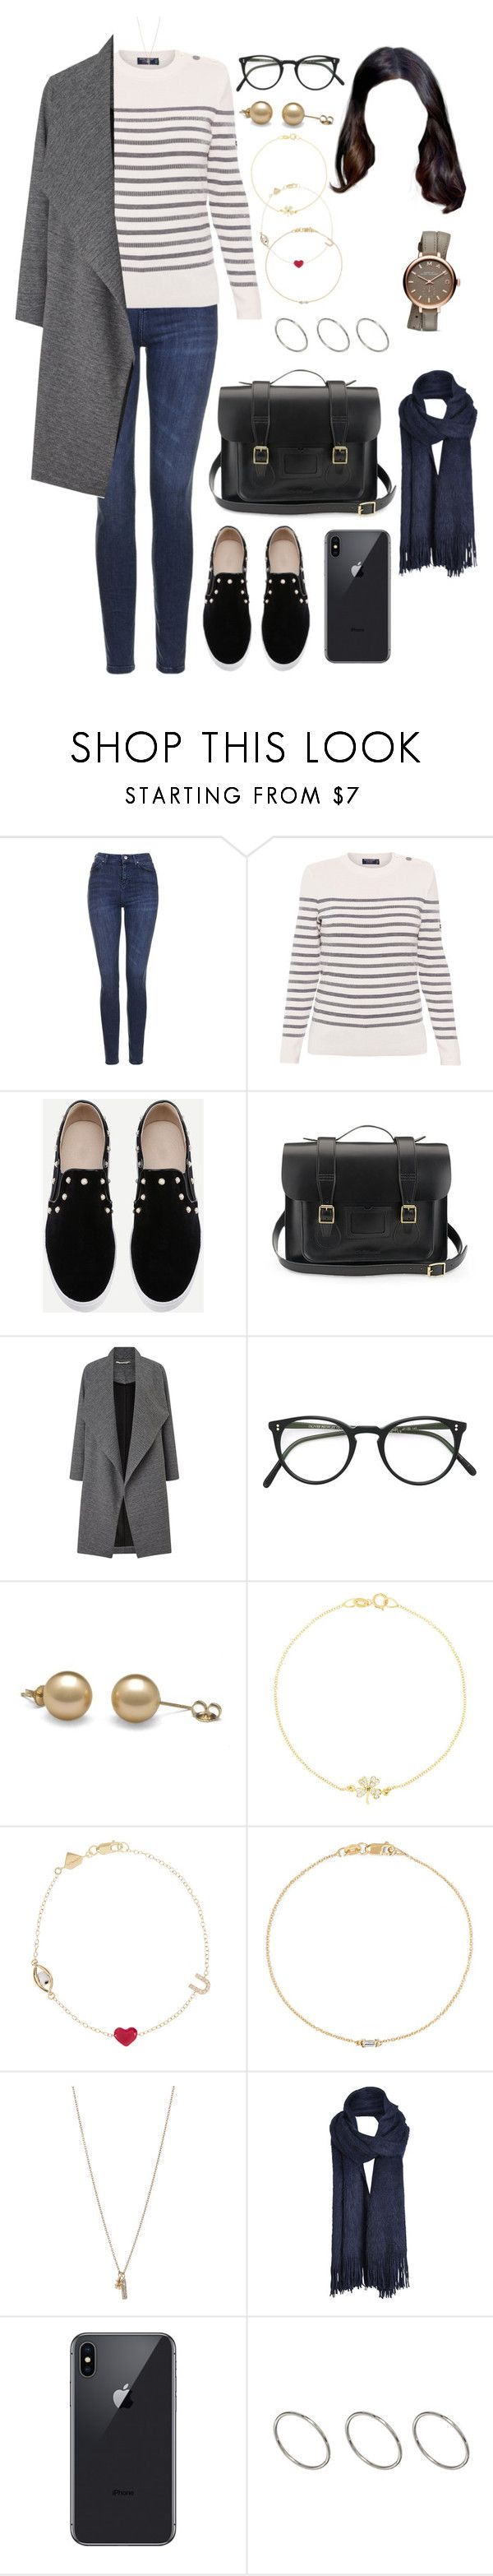 """""""PAR (all day/work)"""" by ittgirl ❤ liked on Polyvore featuring Topshop, Saint James, Dr. Martens, Miss Selfridge, Oliver Peoples, Jennifer Meyer Jewelry, Alison Lou, Ileana Makri, Minor Obsessions and ONLY"""